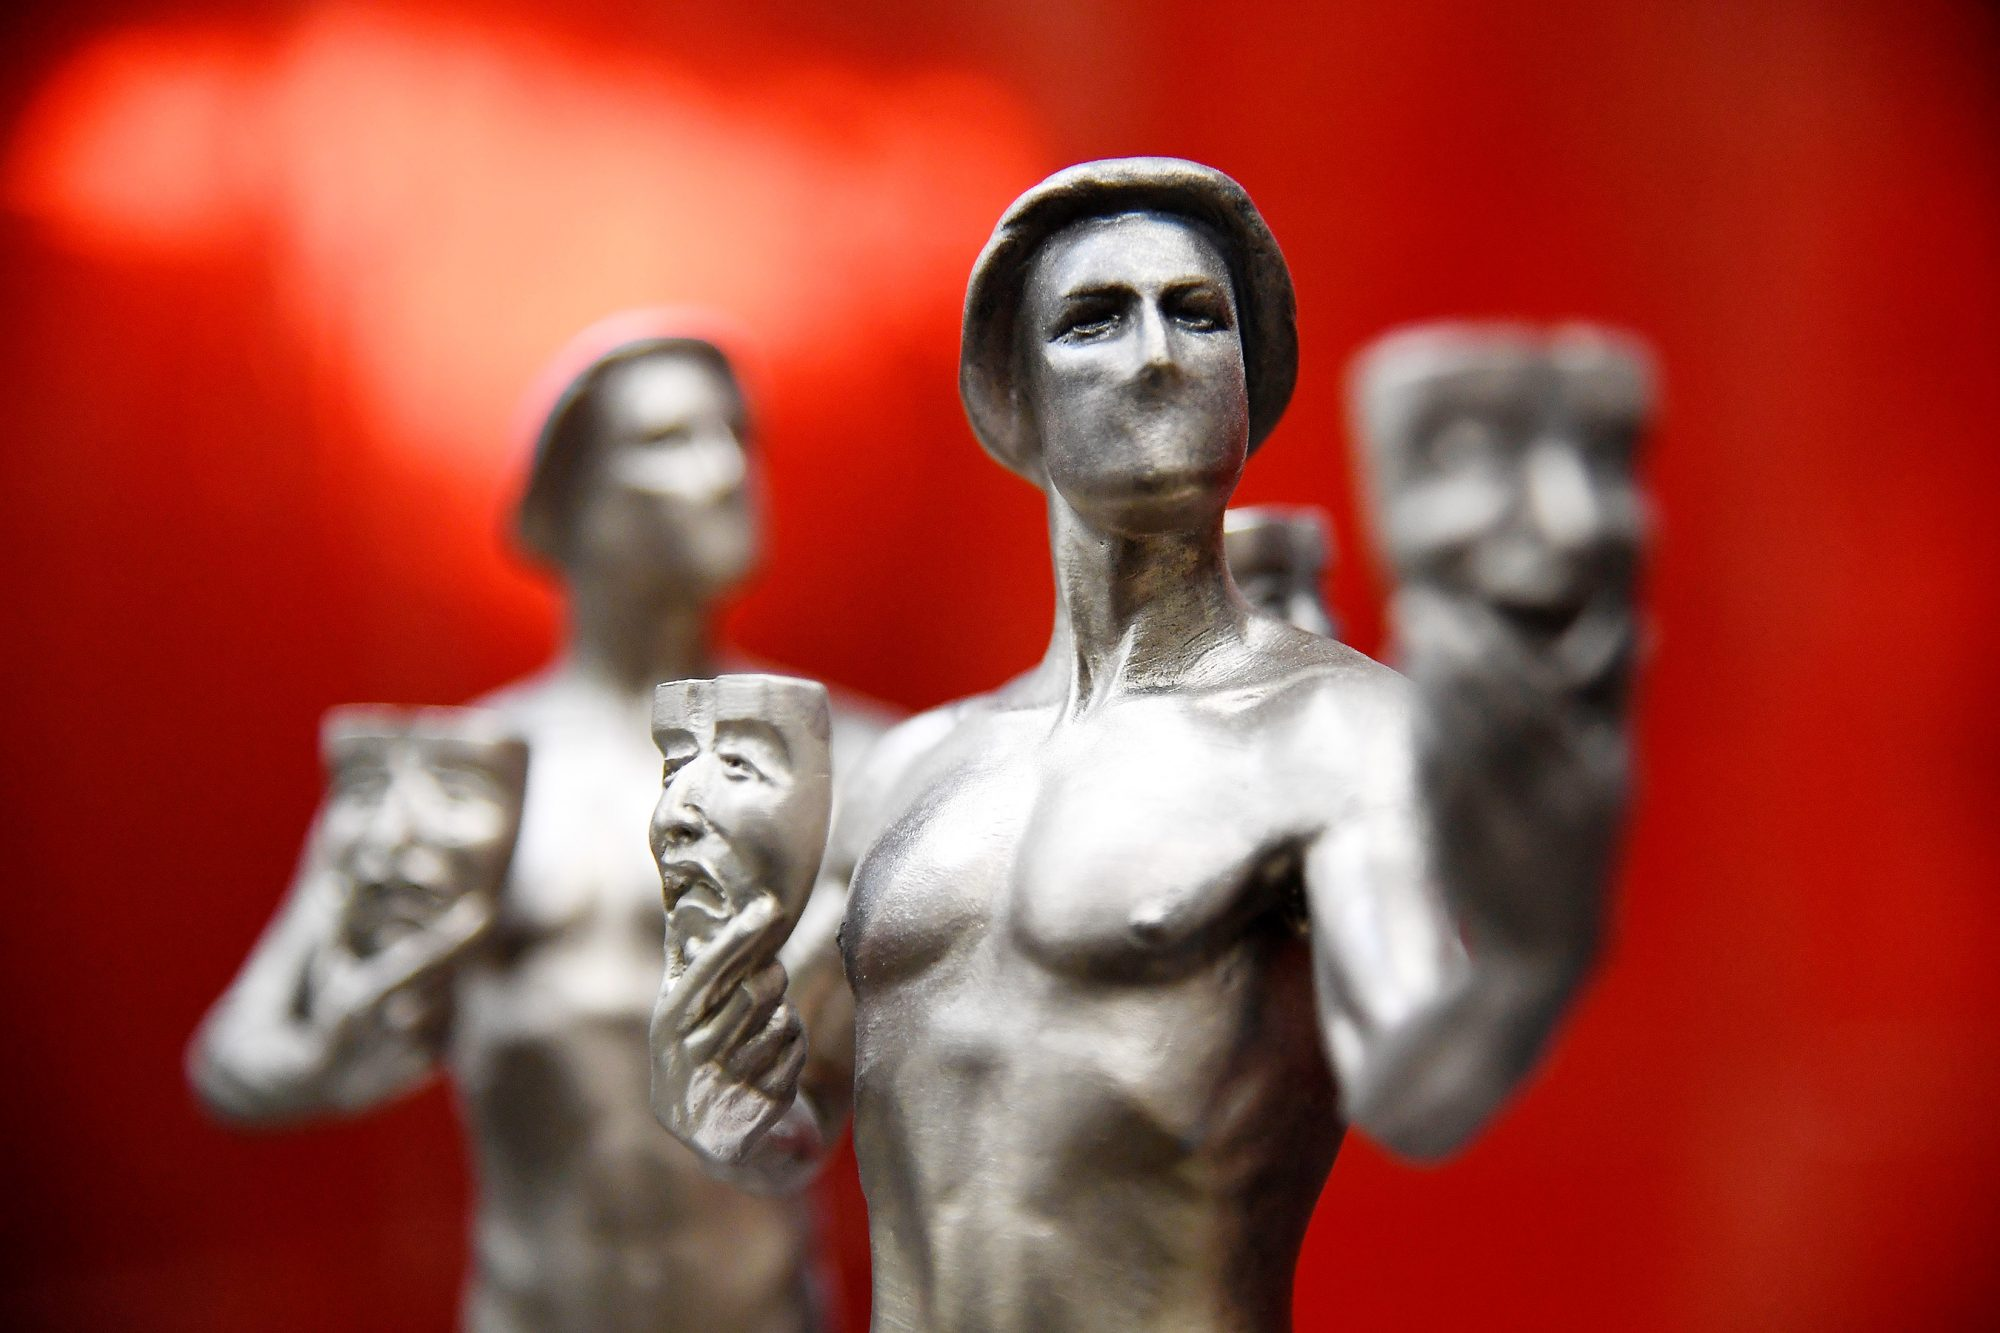 The 25th Annual Screen Actors Guild Awards - Pouring Of Actor Statuette